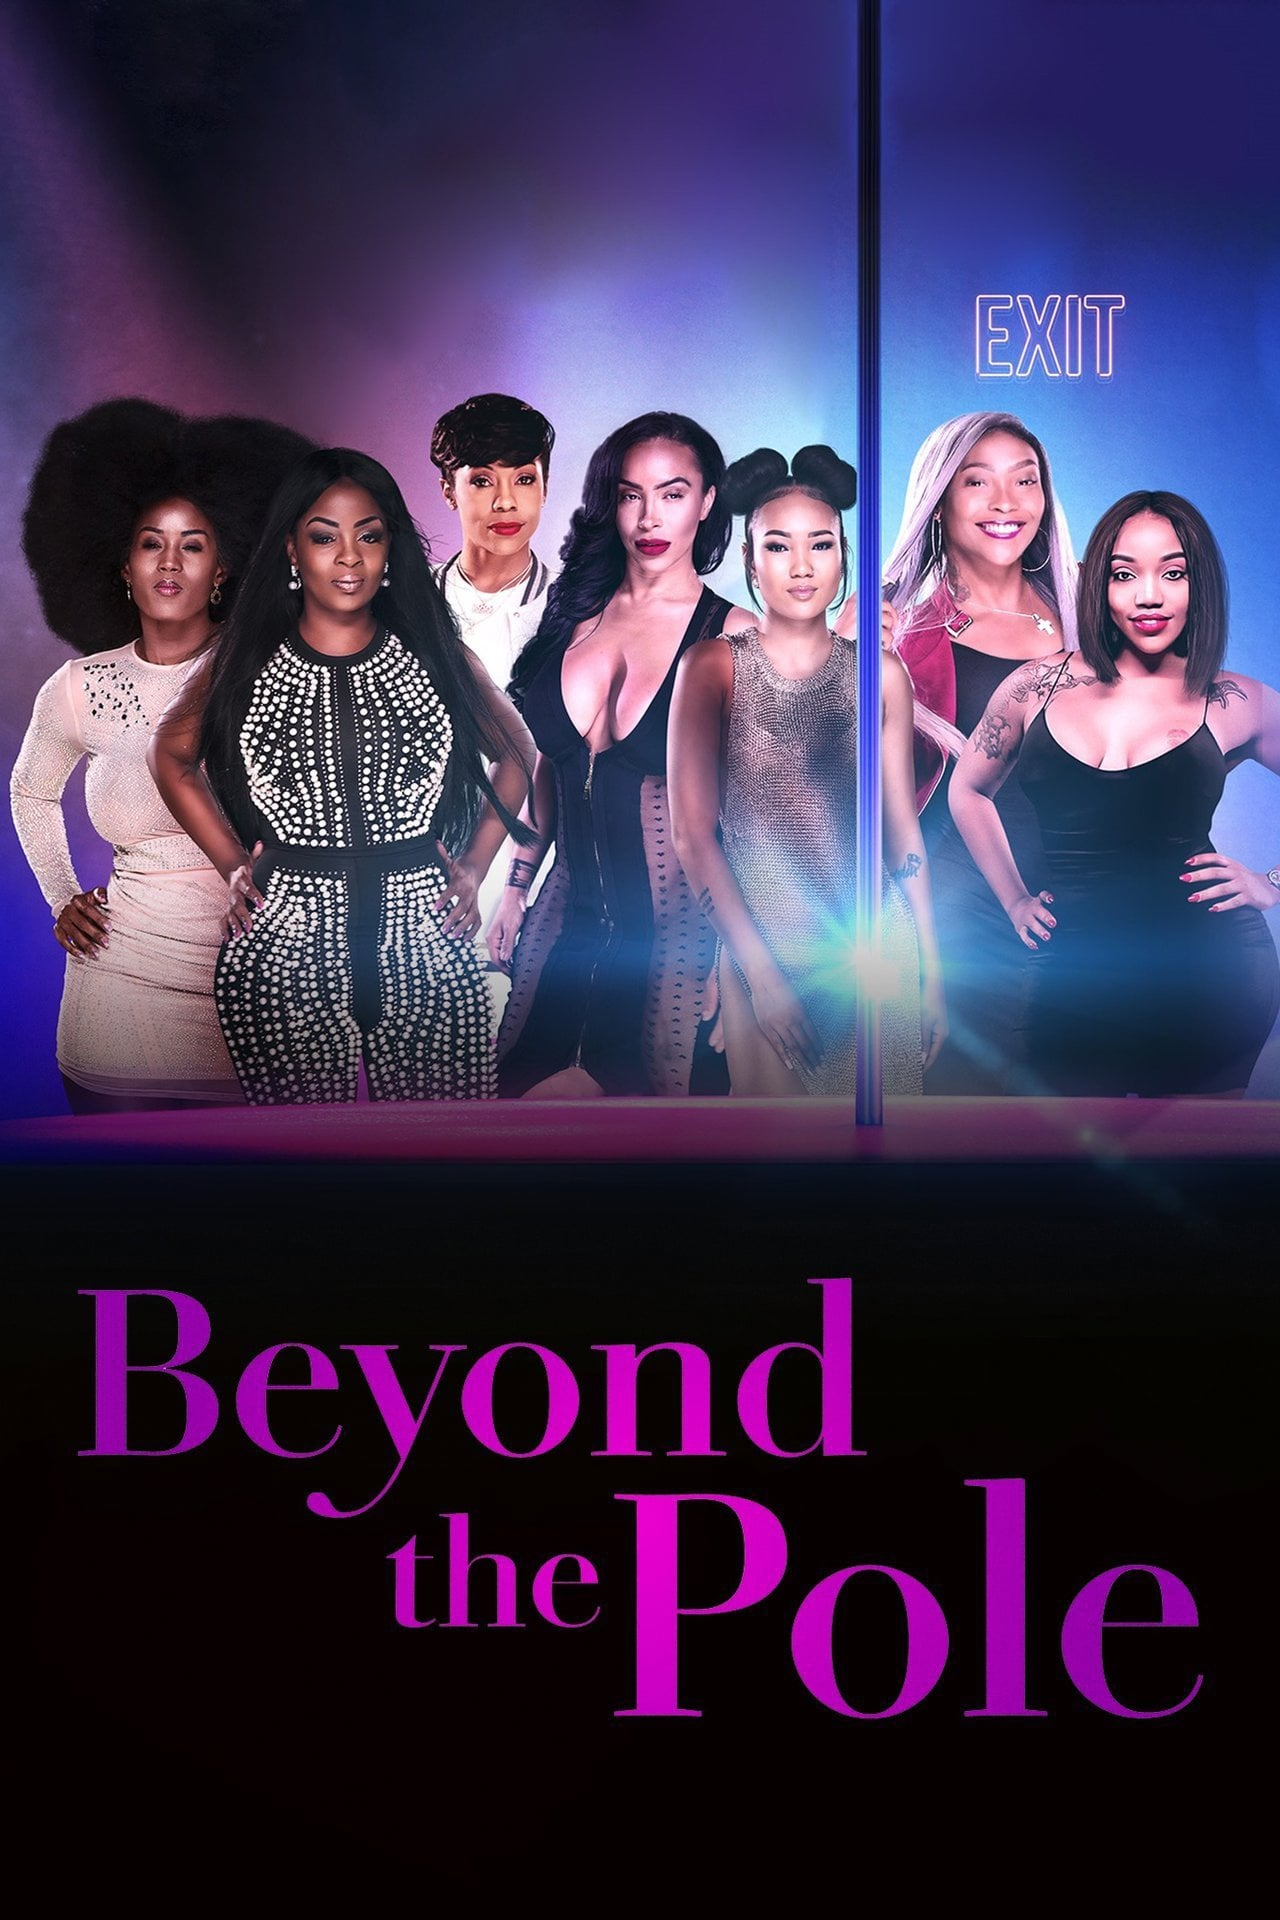 Beyond the Pole (2019)